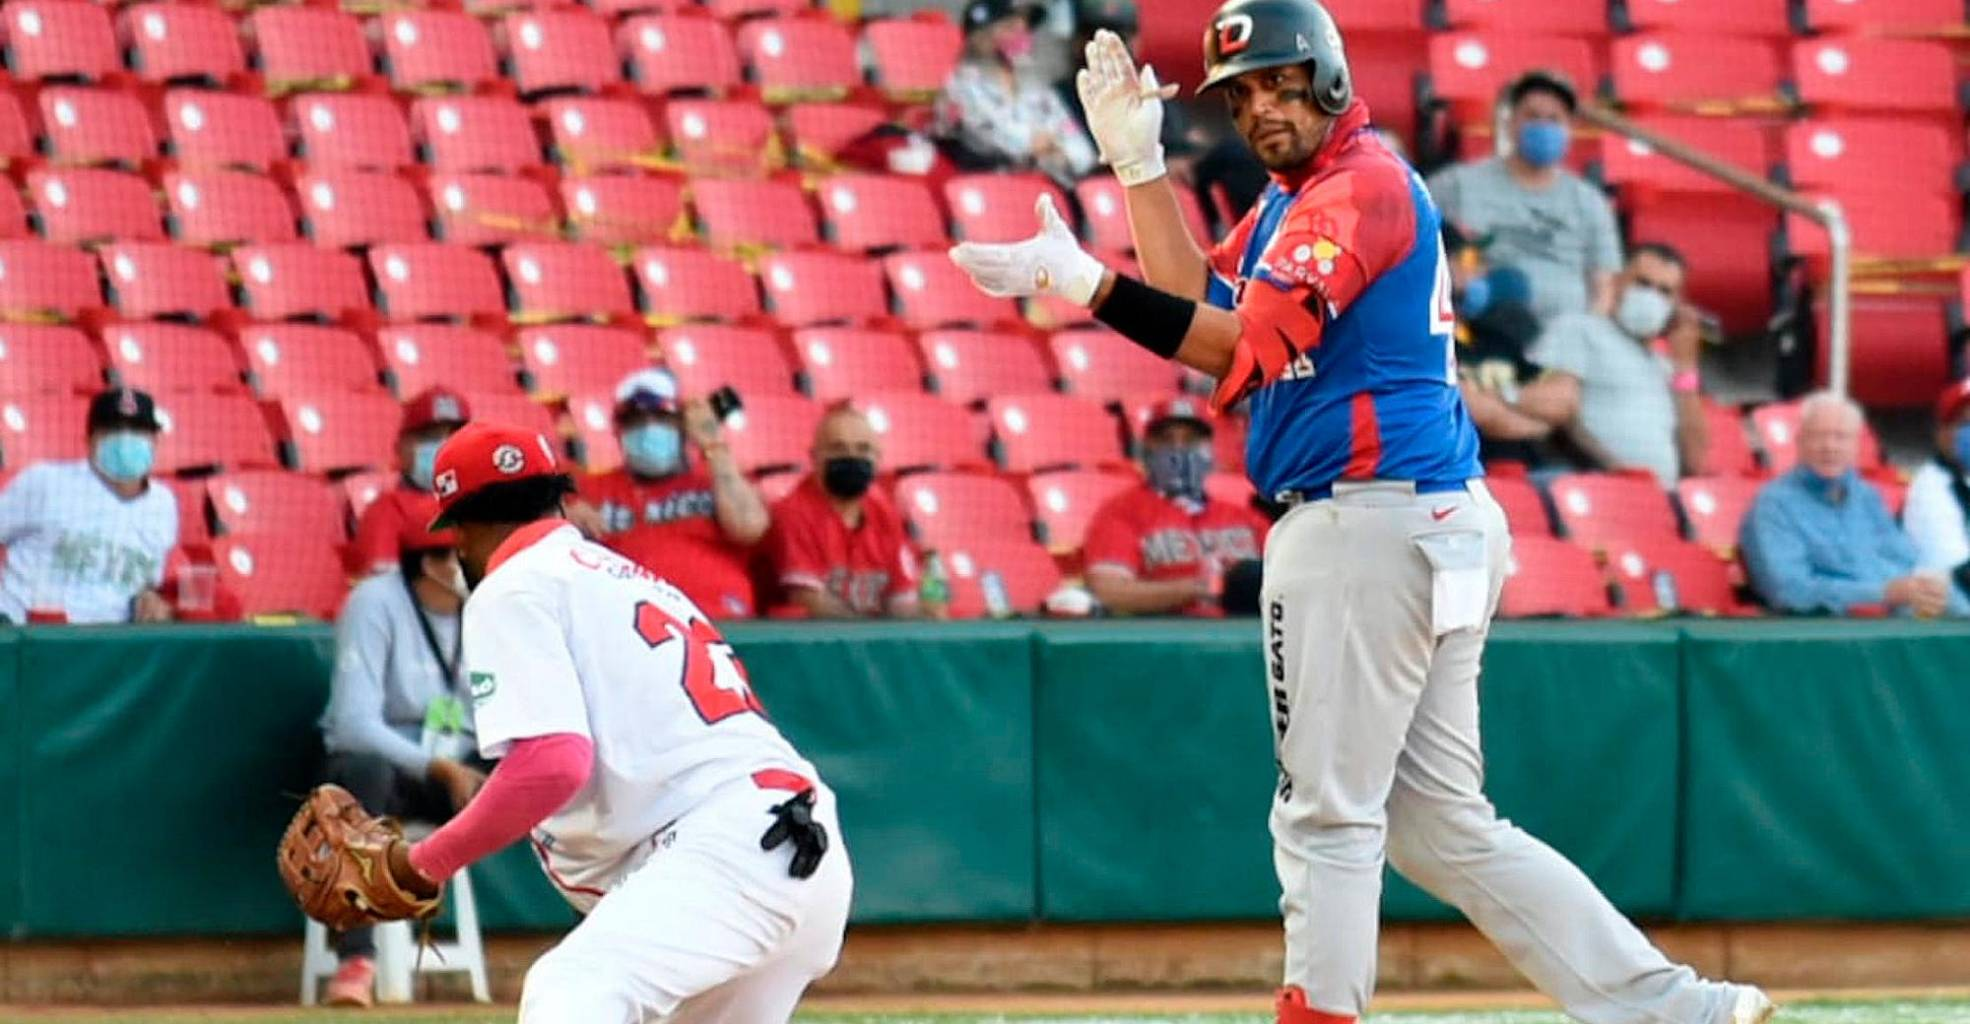 RD defeats Panama and remains undefeated in the Caribbean series